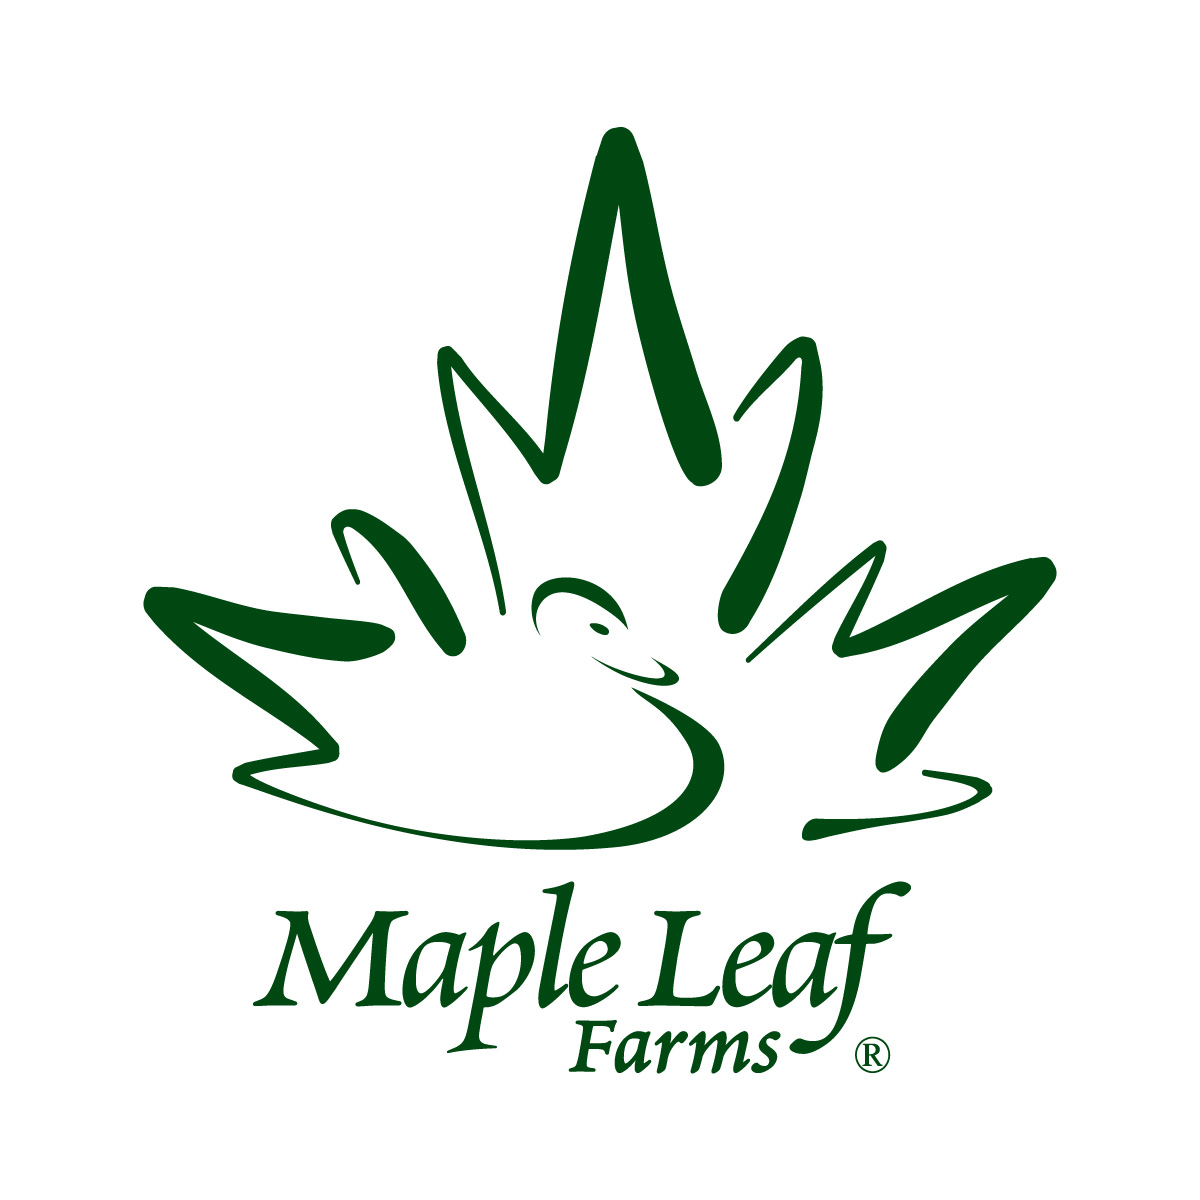 We invite you to experience Maple Leaf Farms in SW Roanoke, cbbhreview.ml Homes are built with care and quility by Progress Street Builders based in Blacksburg, Virginia. Maple Leaf Farms offers Craftsman style homes featuring One-Level Living in a convenient location.